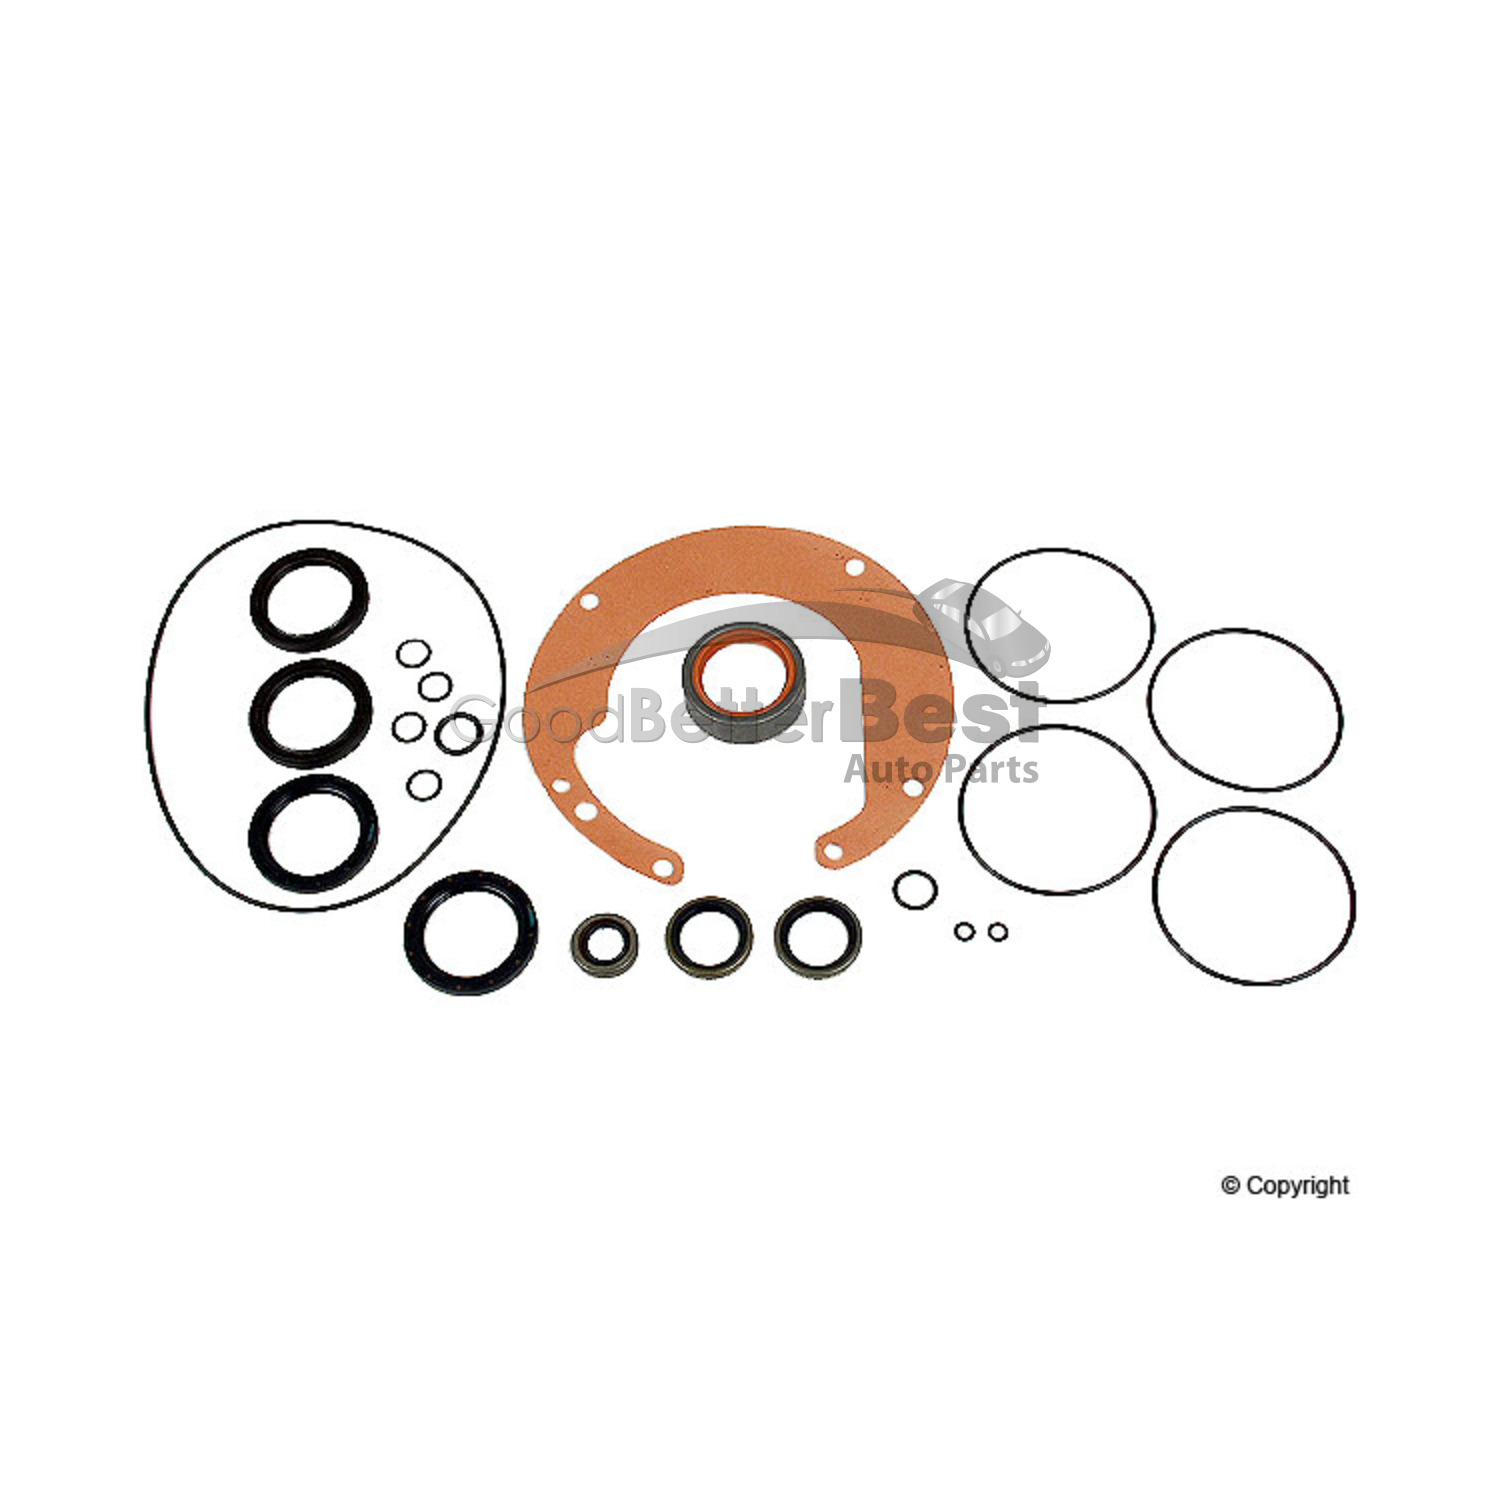 New Hap Differential Gasket Set Front 087498007 for Audi